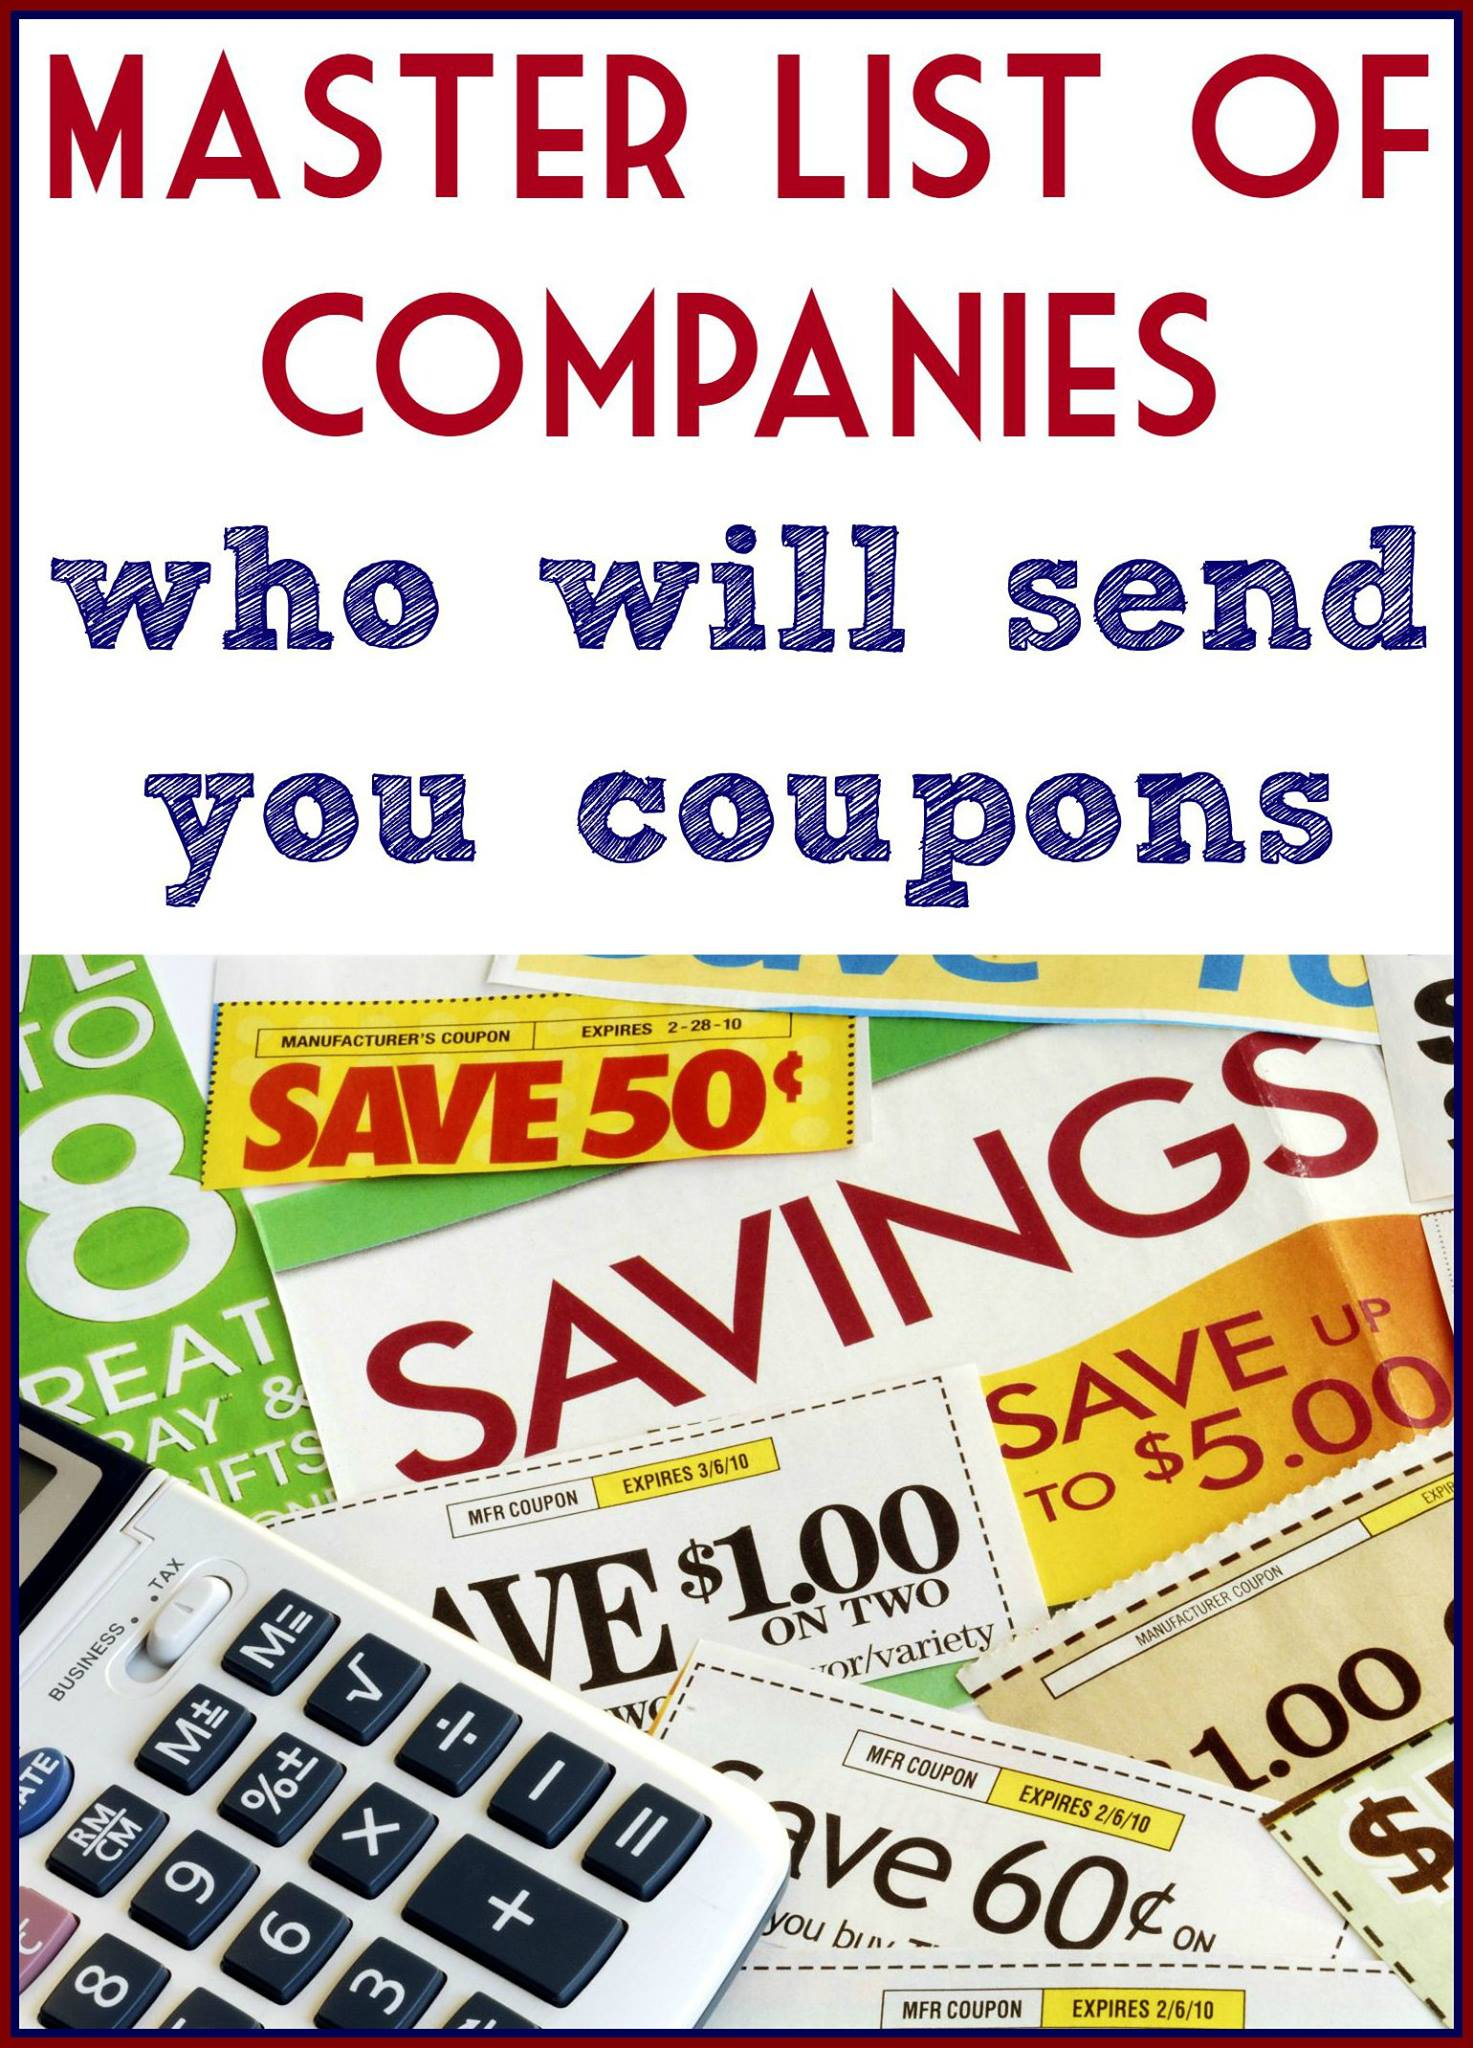 List Of Companies To Email For Coupons! - Free Printable Chinet Coupons